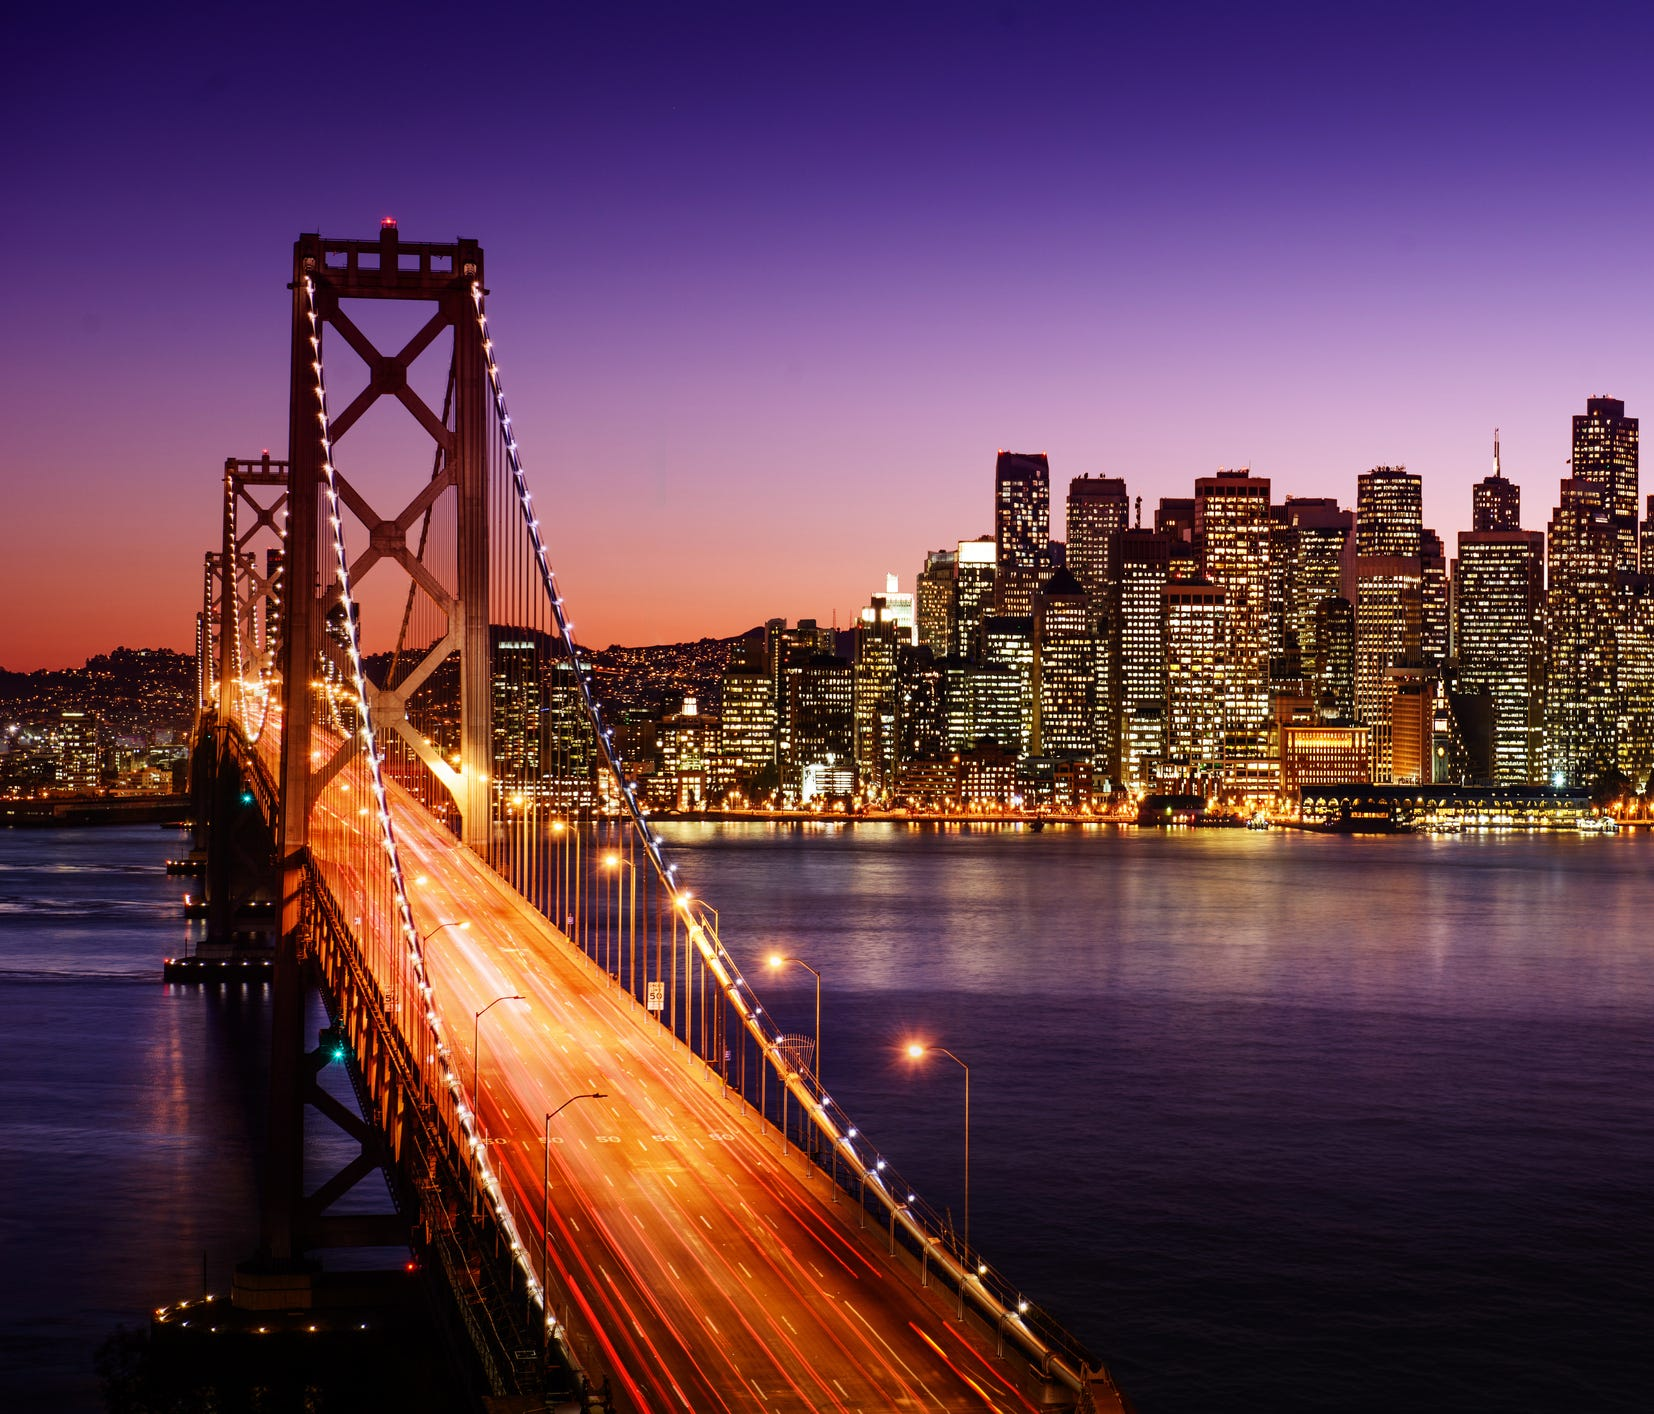 San Francisco ranked No. 2 in Dell's study.